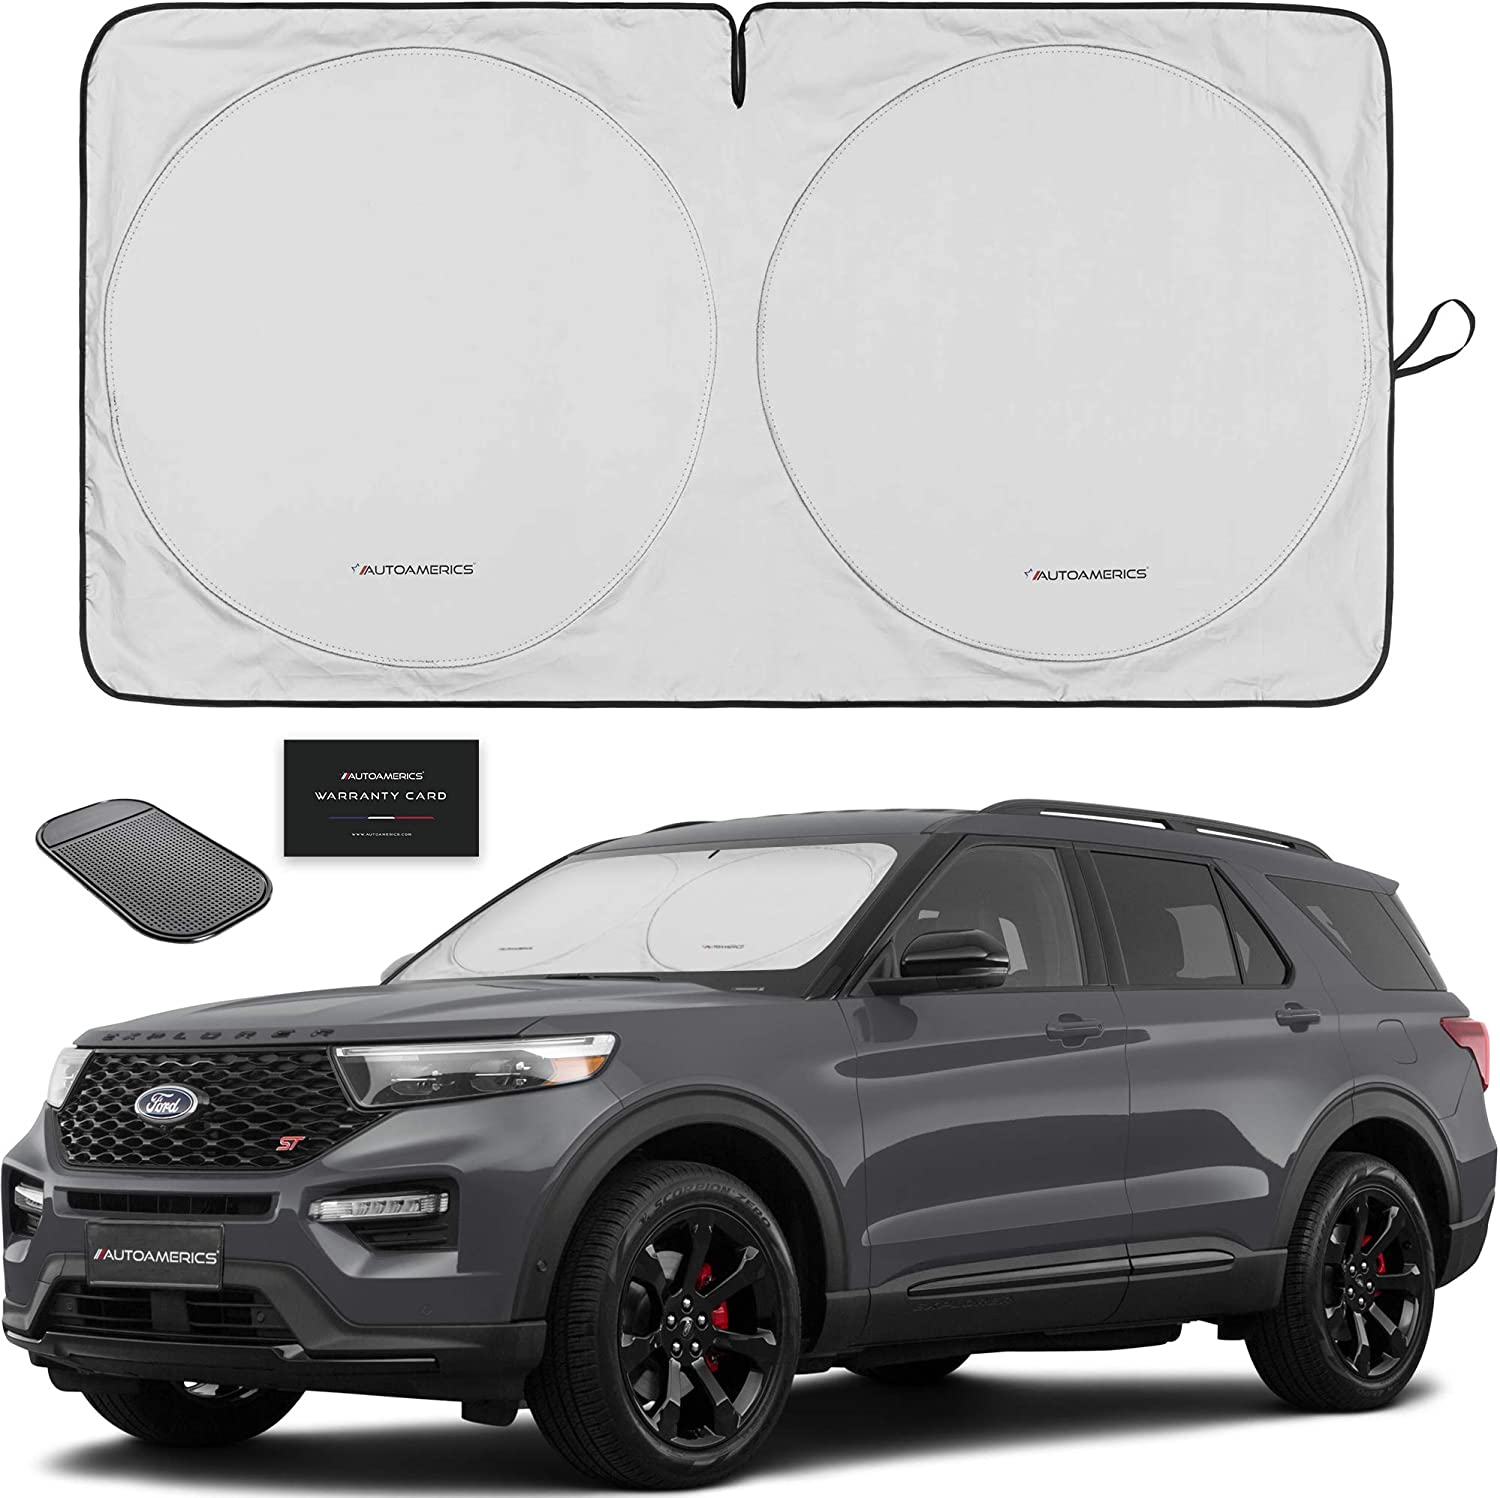 Autoamerics 1-Piece Windshield Sun Shade Foldable Car Front Window Sunshade for Most Sedans SUV Truck - Best Auto Heat Shield Reflector Cover - Blocks Max UV Rays and Keeps Your Vehicle Cool - Medium